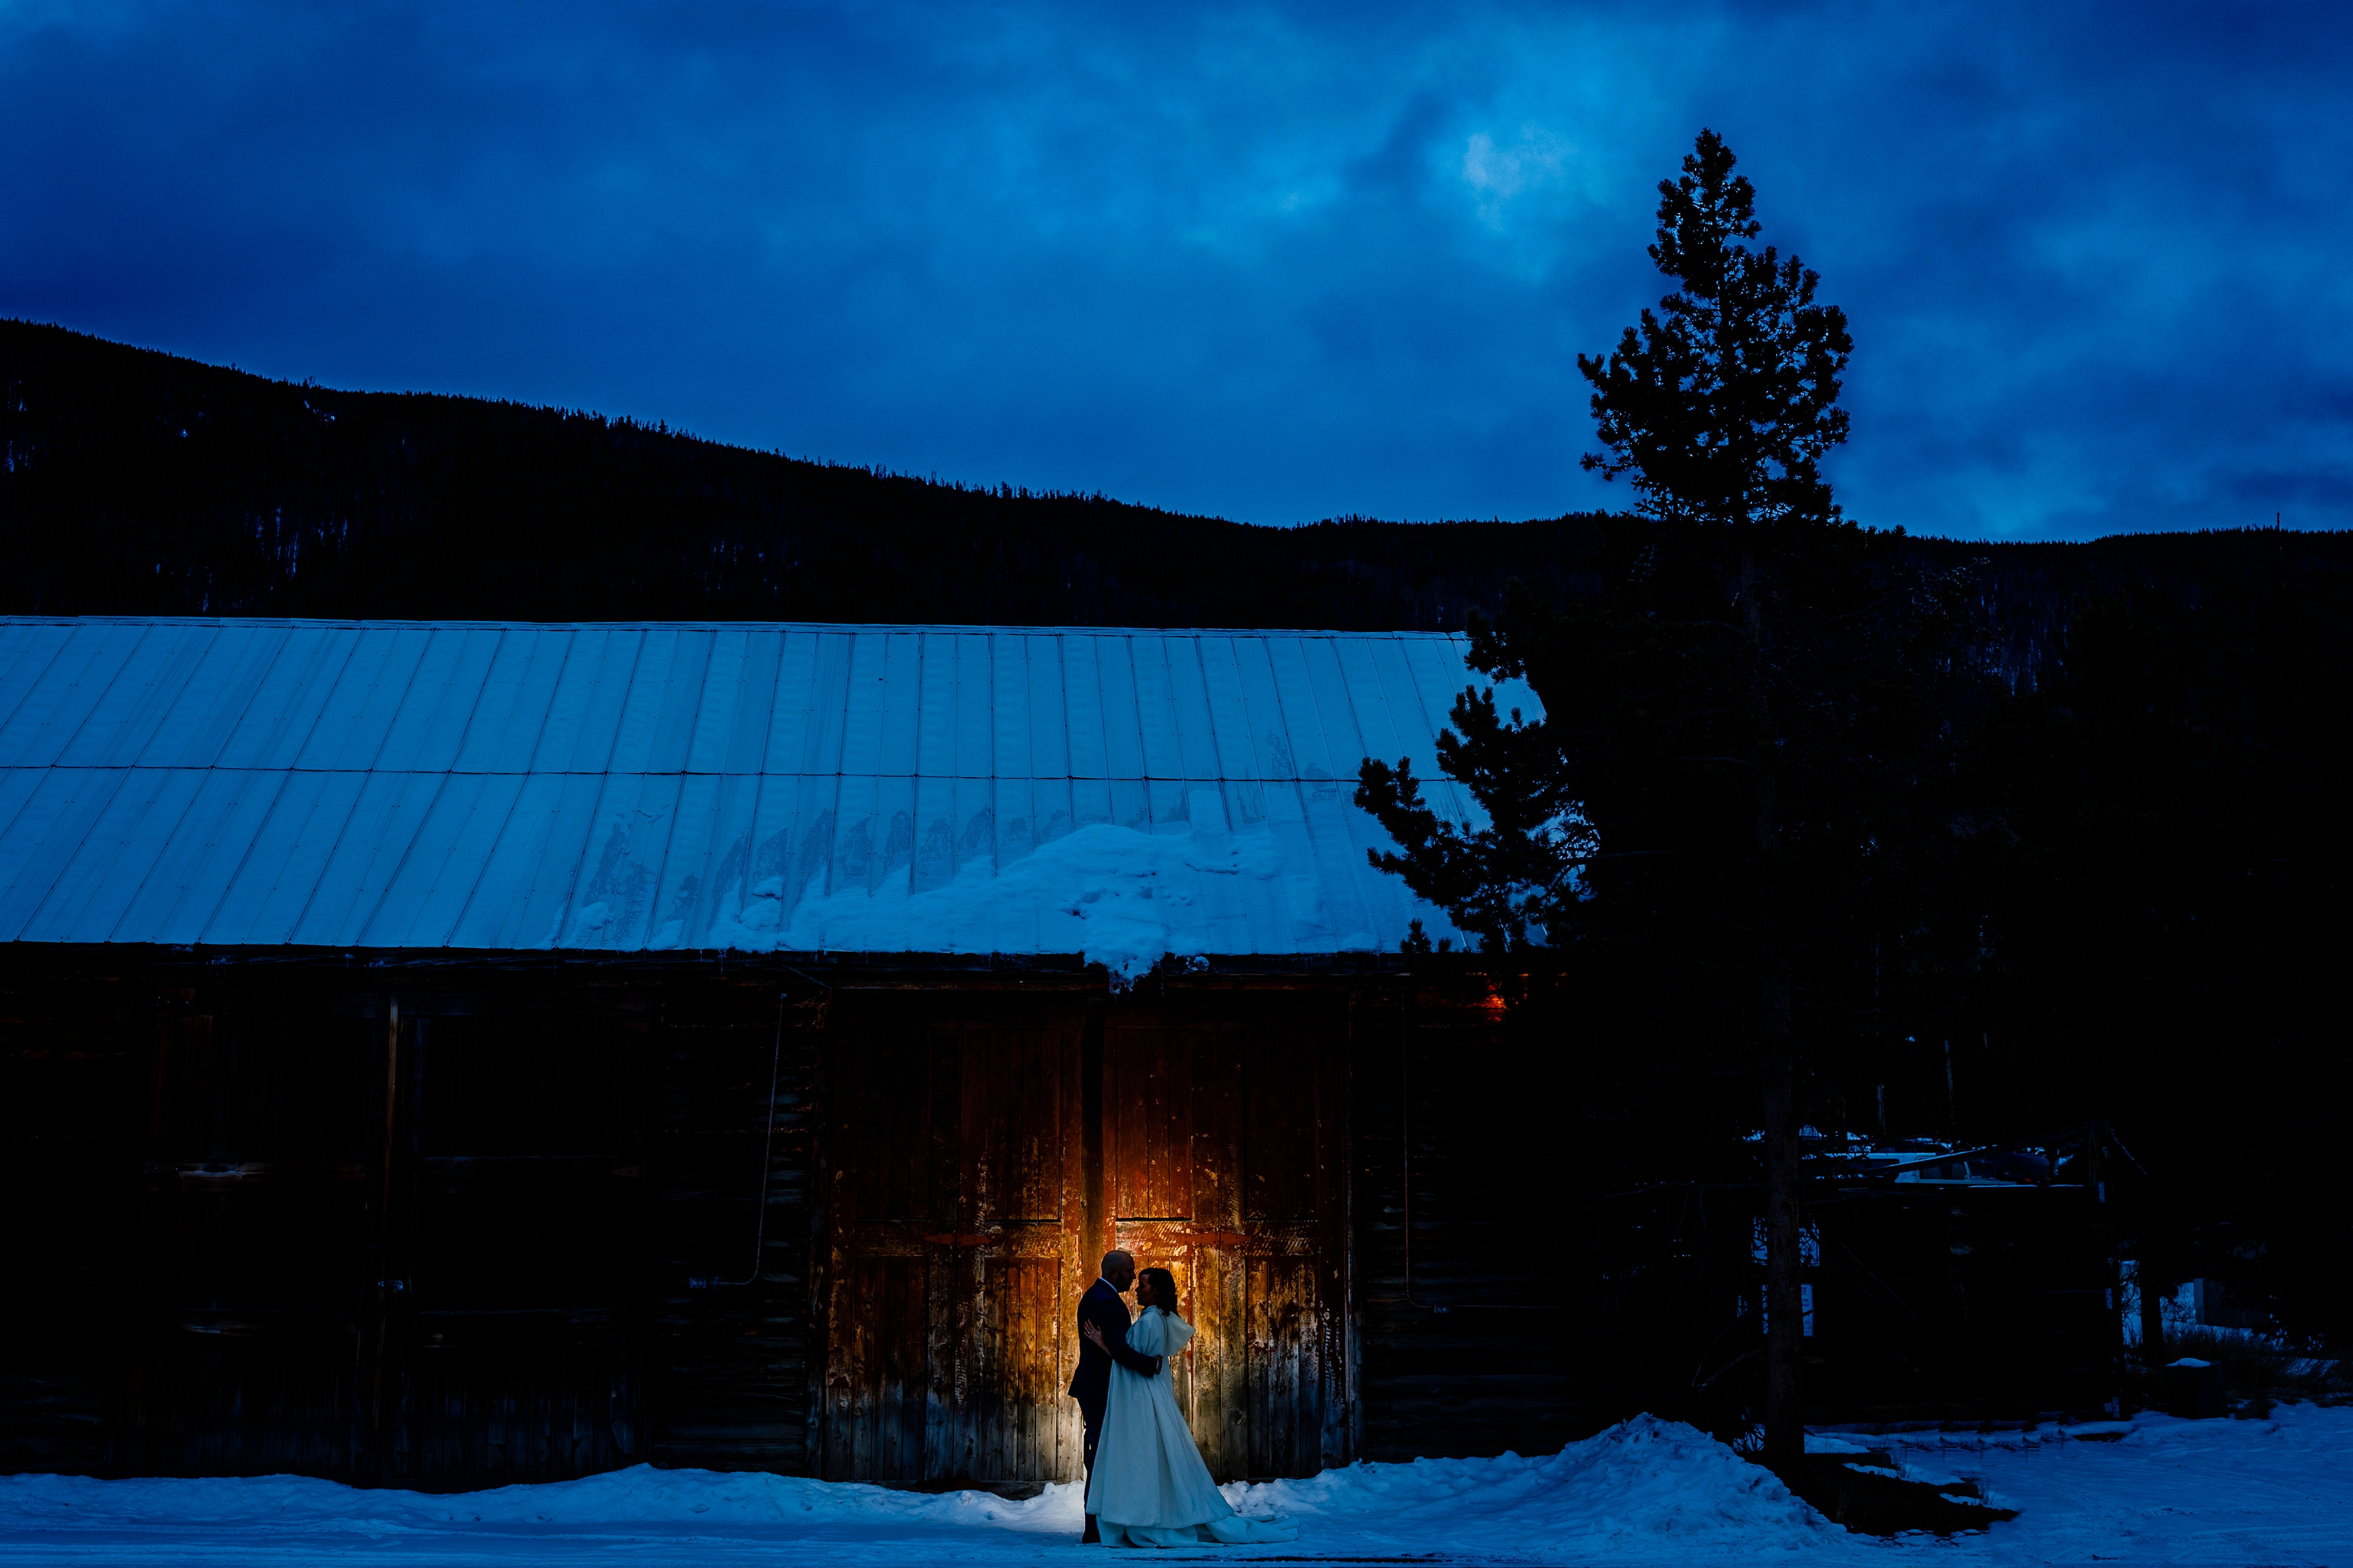 One last nighttime portrait for Rachel & Scott's Keystone Ranch Winter Wedding in December of 2017.